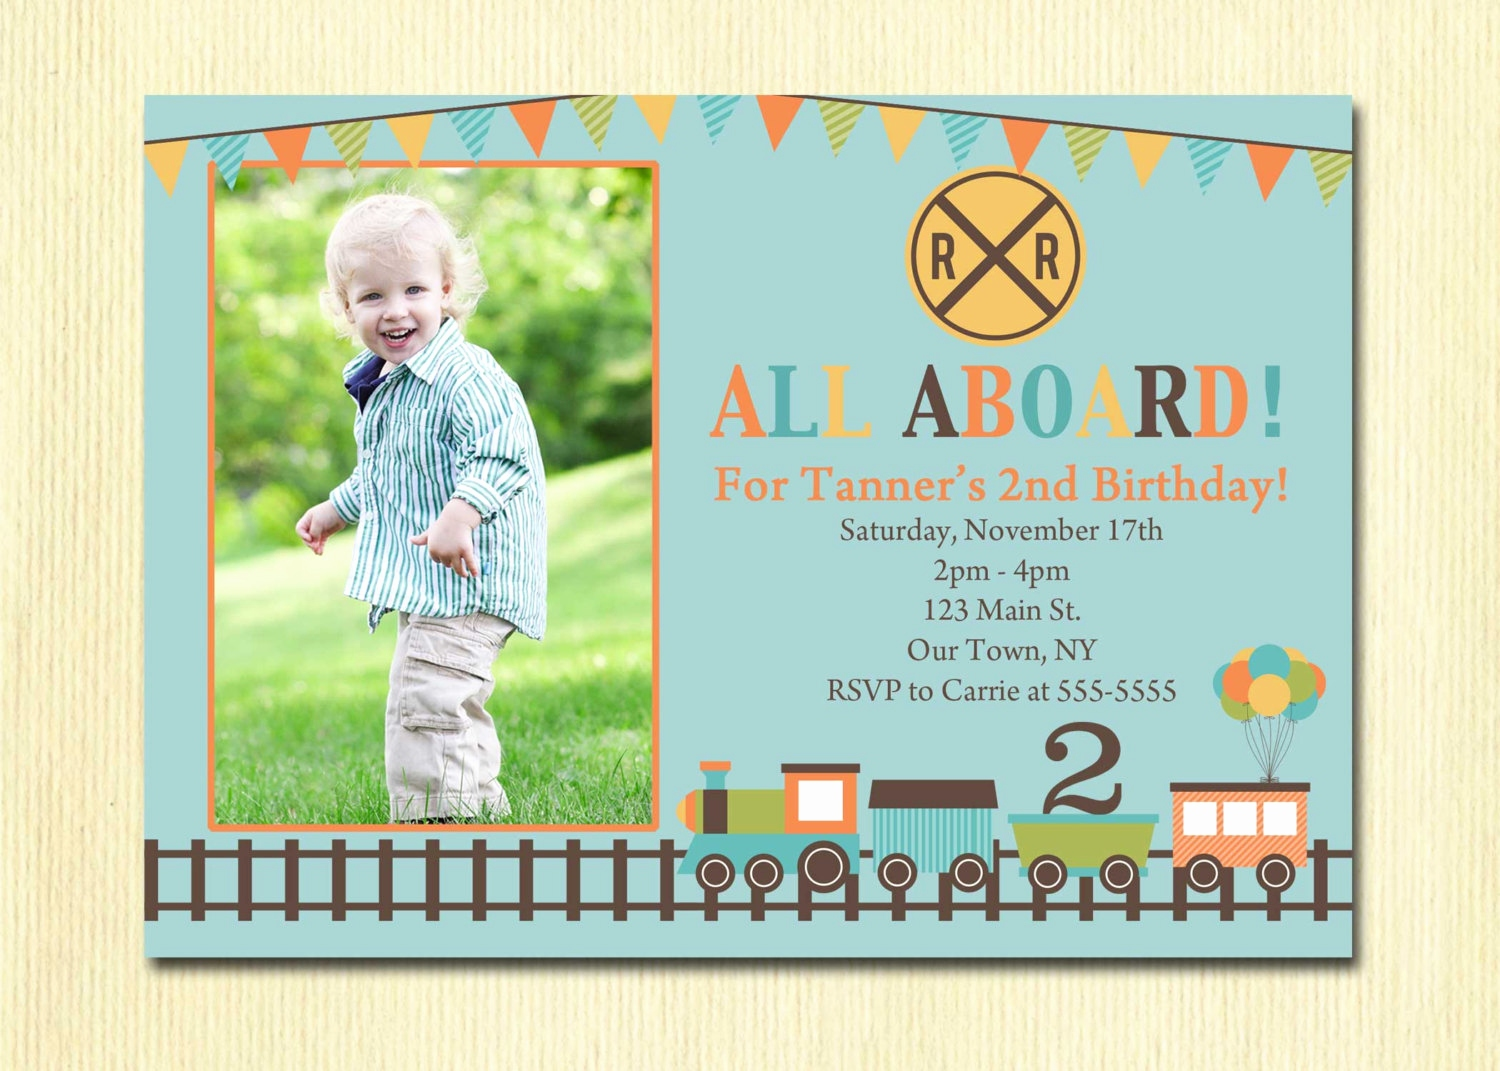 4th birthday invitation quotes ; baby-boy-first-birthday-invitation-quotes-new-4th-birthday-invitation-wording-of-baby-boy-first-birthday-invitation-quotes